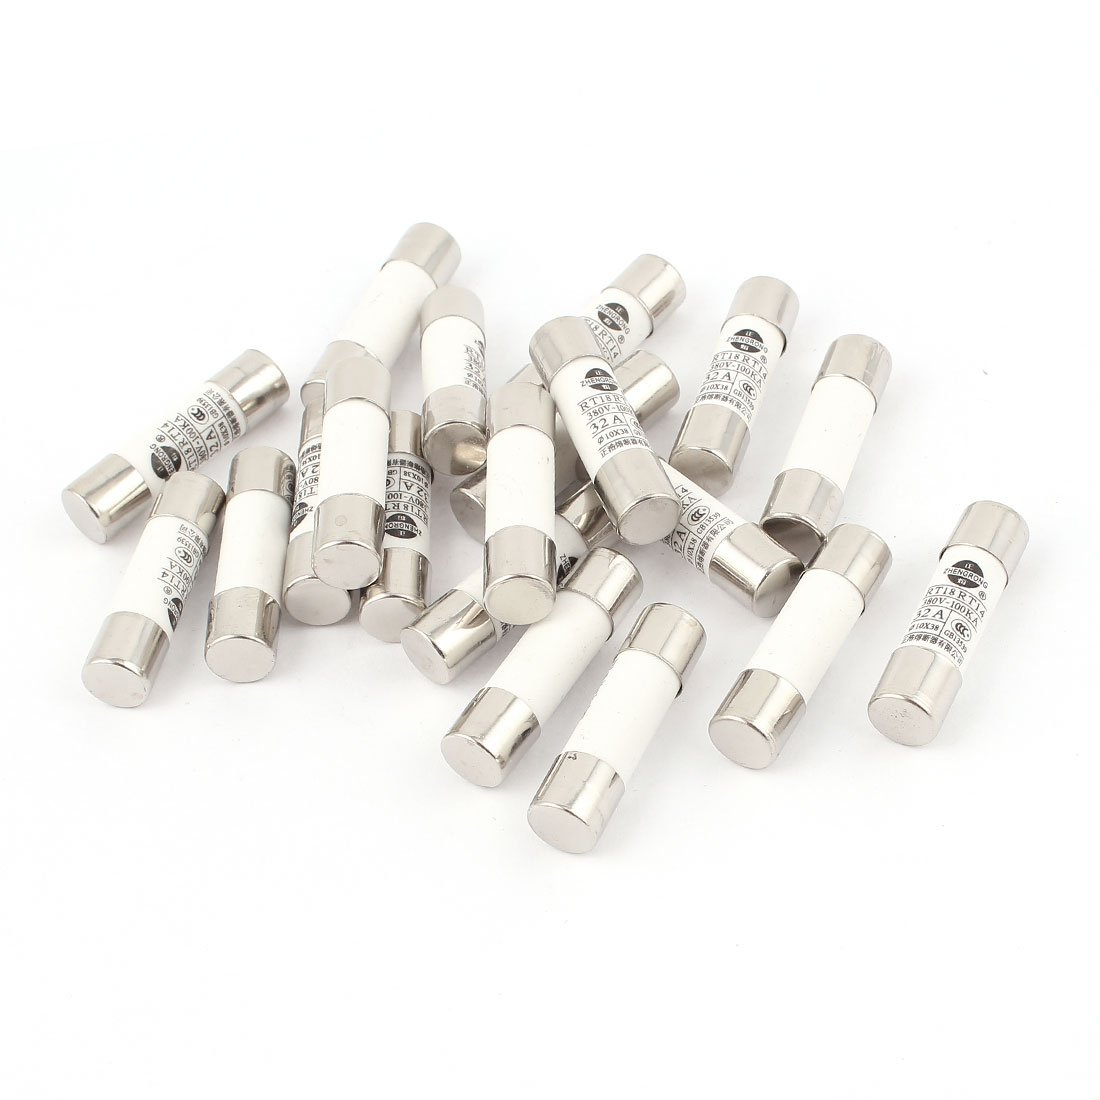 20 Pcs RO15 RT18 RT14 Ceramic Cylindrical Tube Fuse 32A 380V 10x38mm